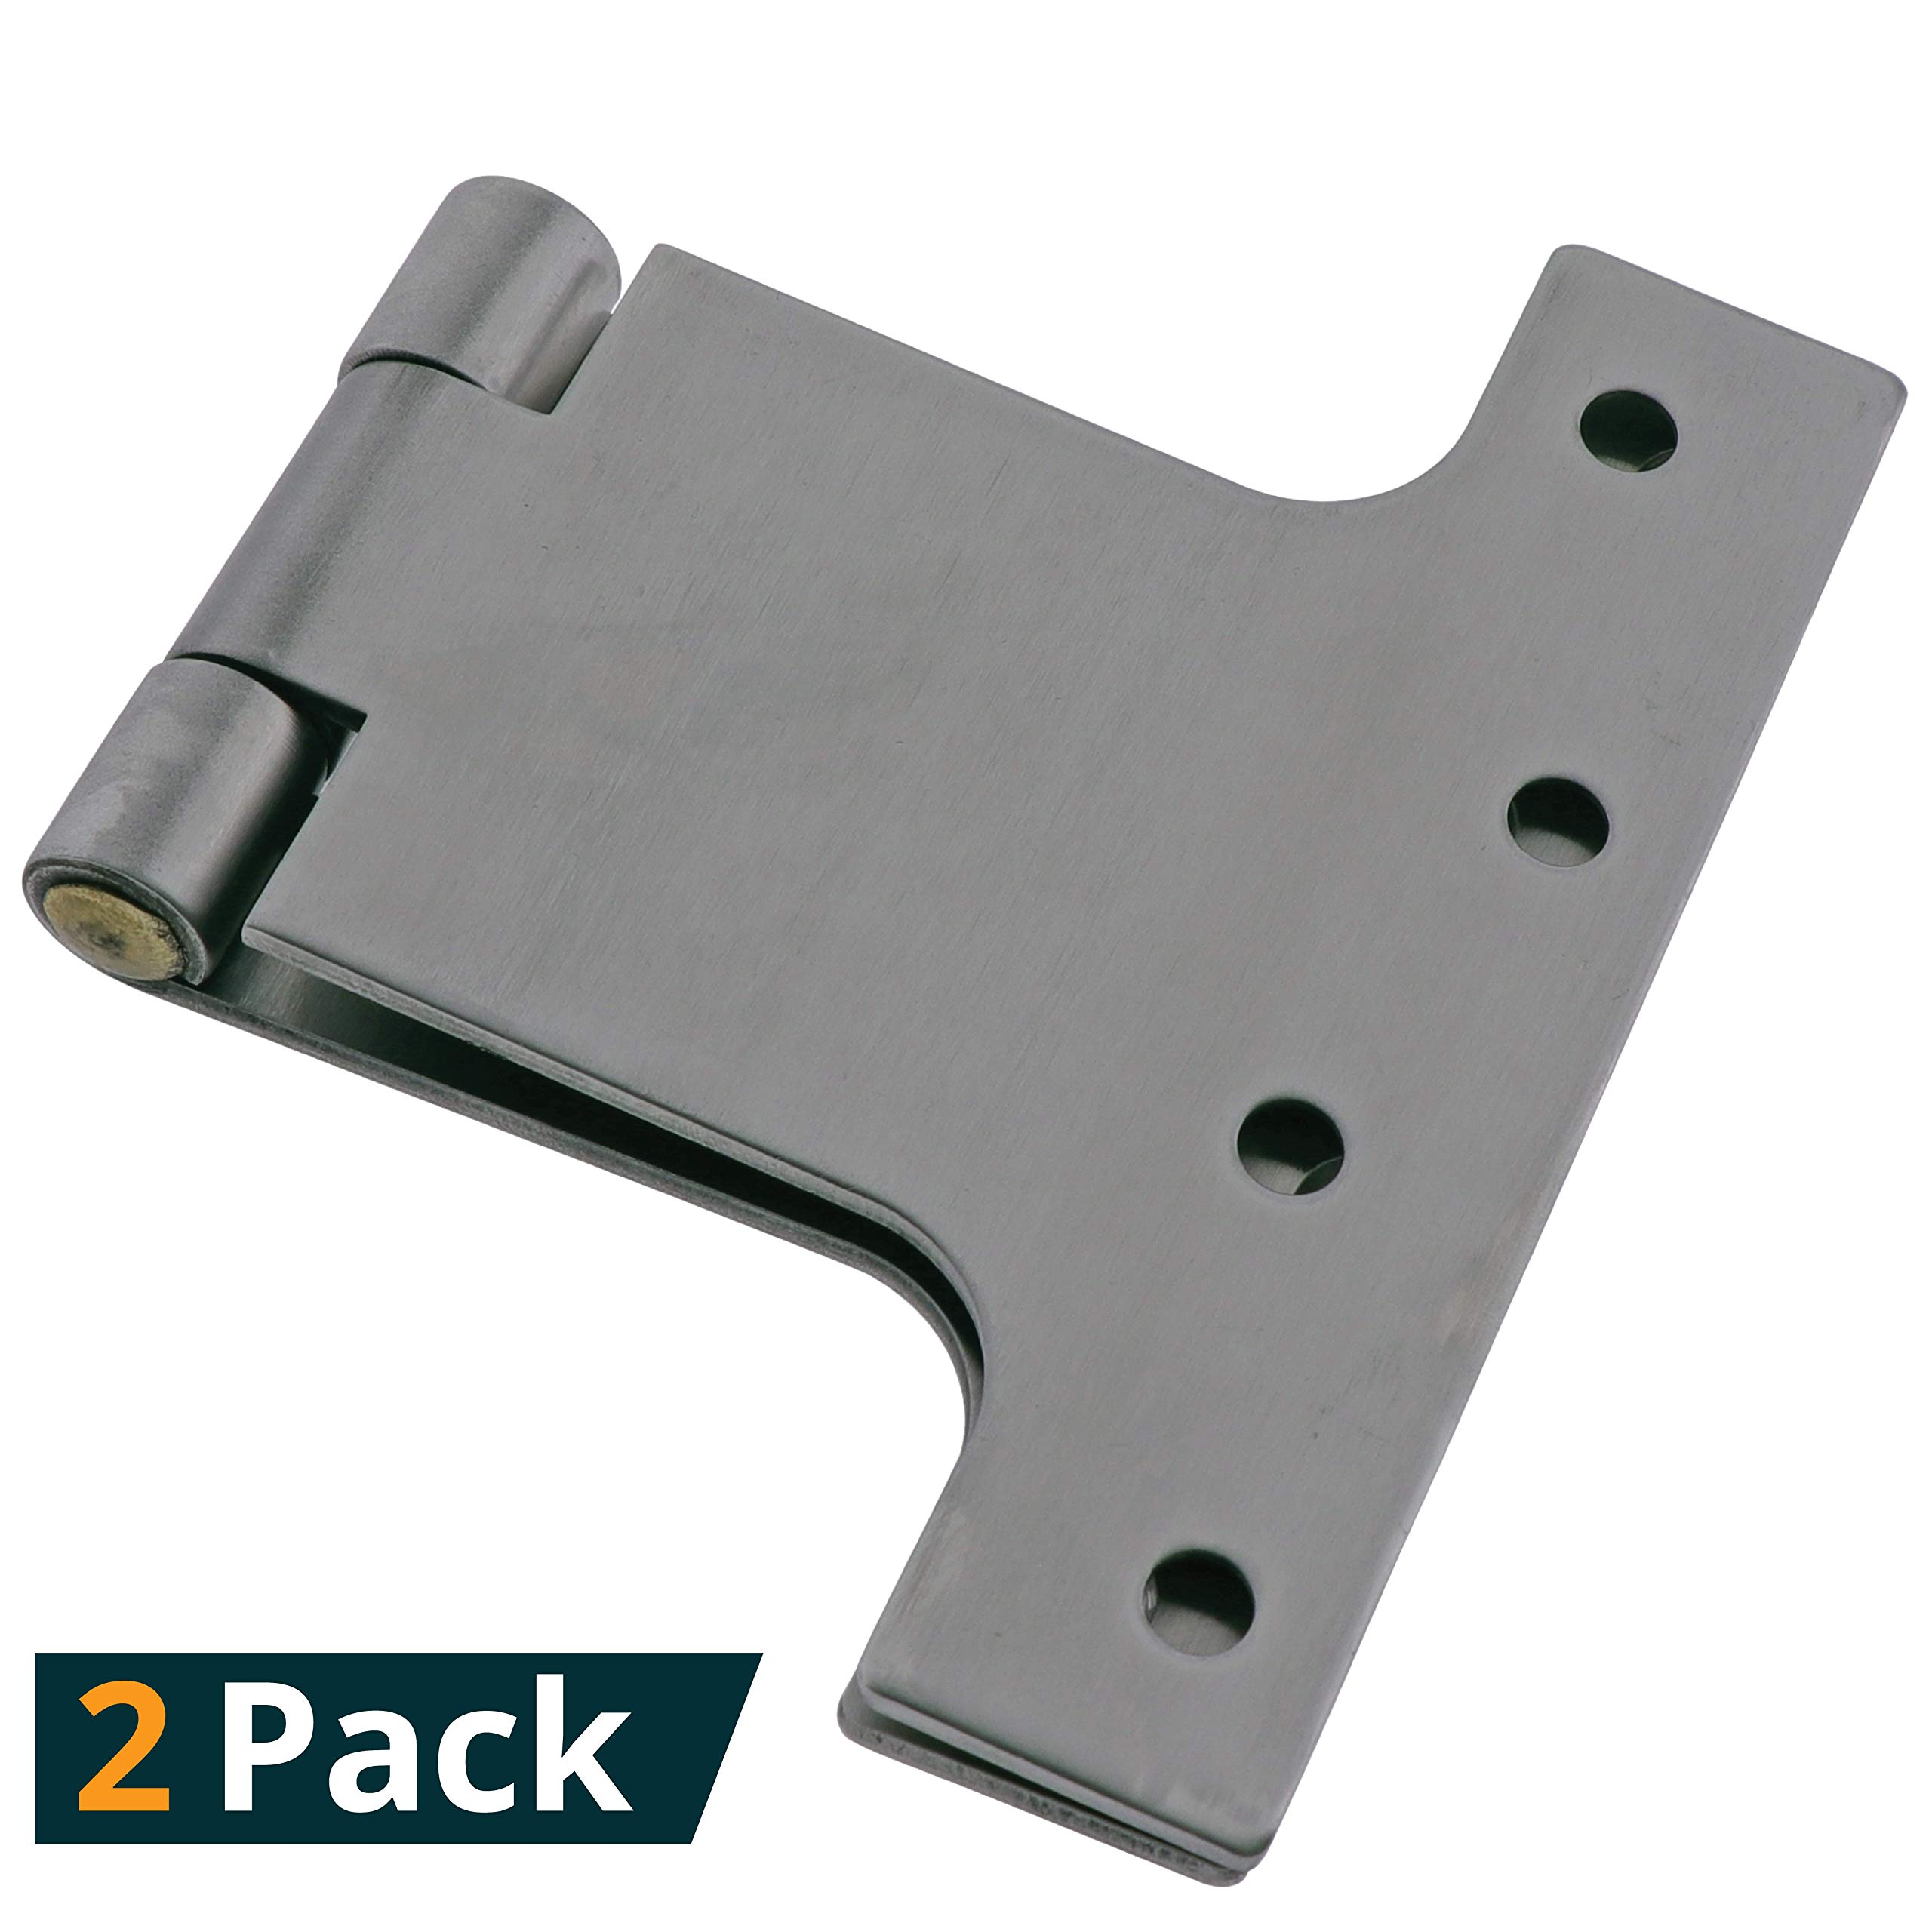 316 Stainless Steel Parliament/Butterfly Hinge (2 Pack) - Indestructible Material Suitable for All Environments - The Hardware Mart (20010)